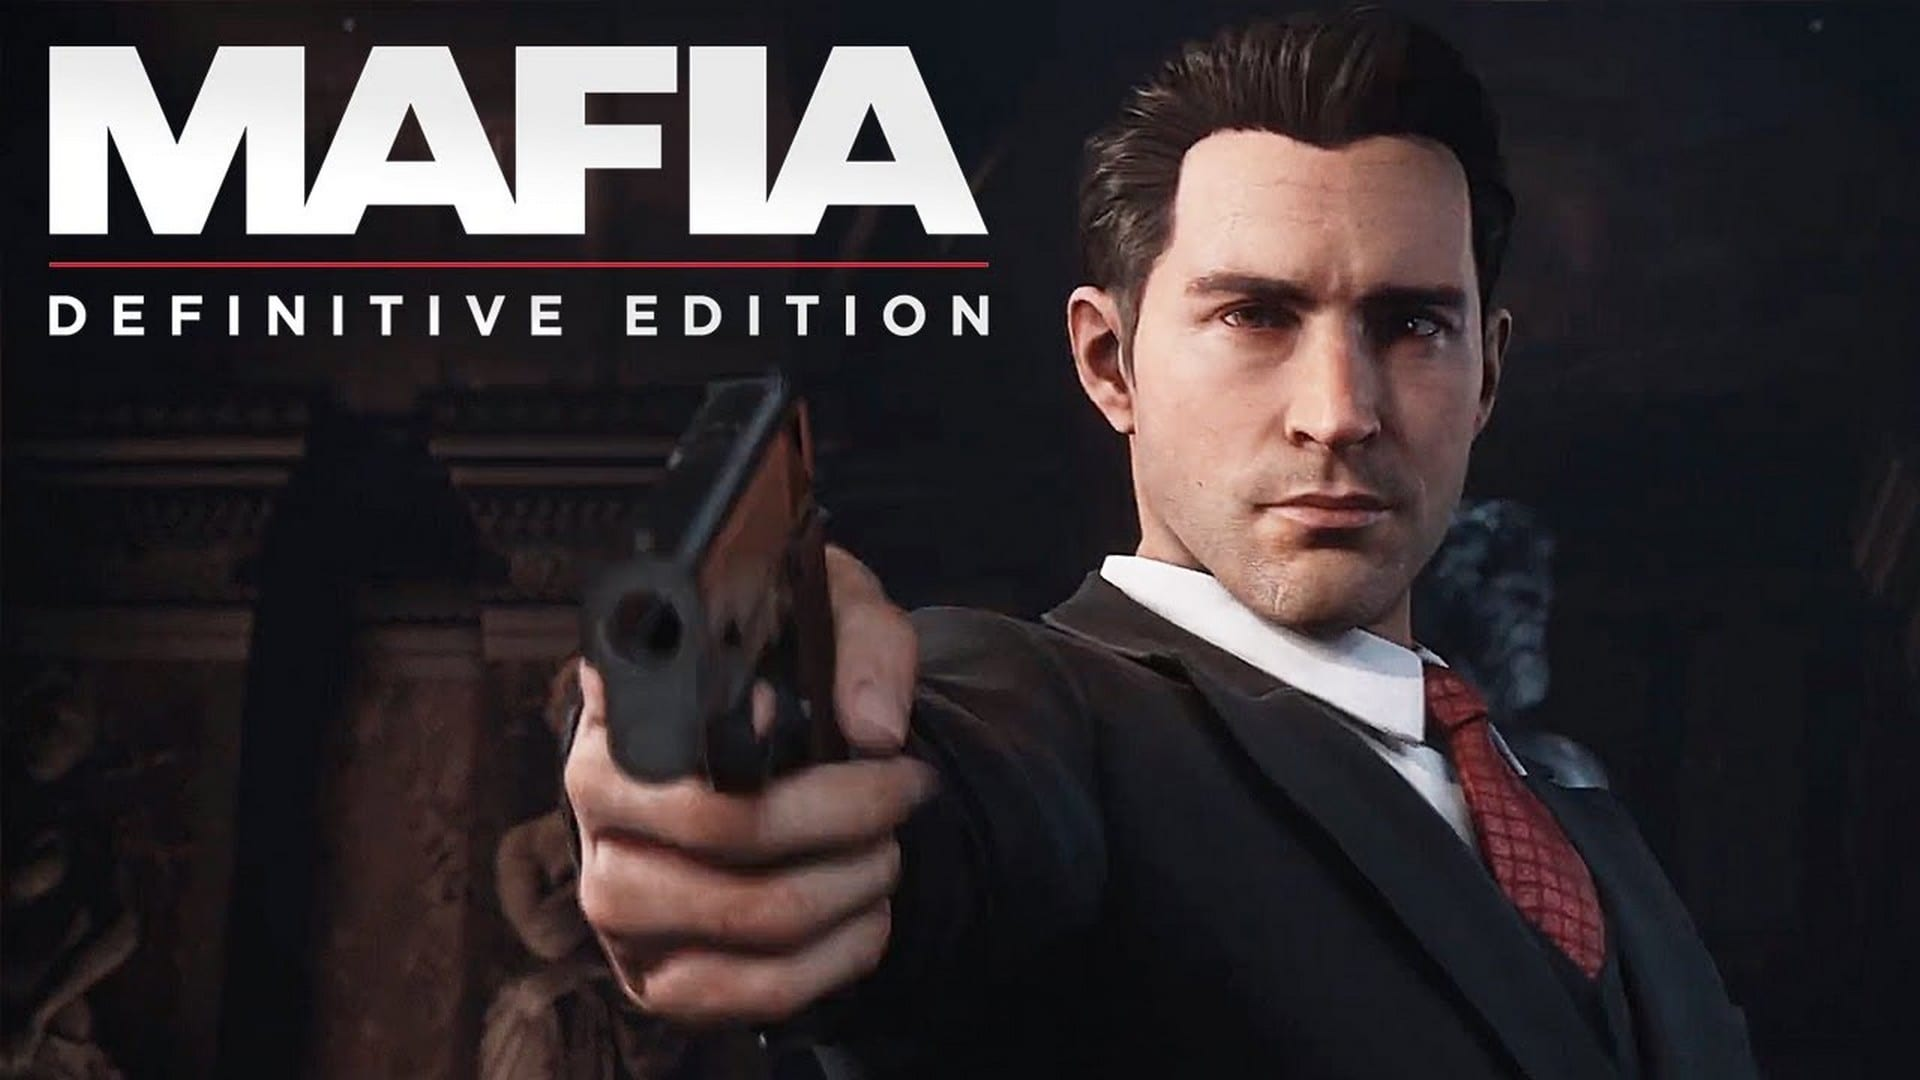 Mafia: Definitive Edition's First Official Narrative Trailer Out Now